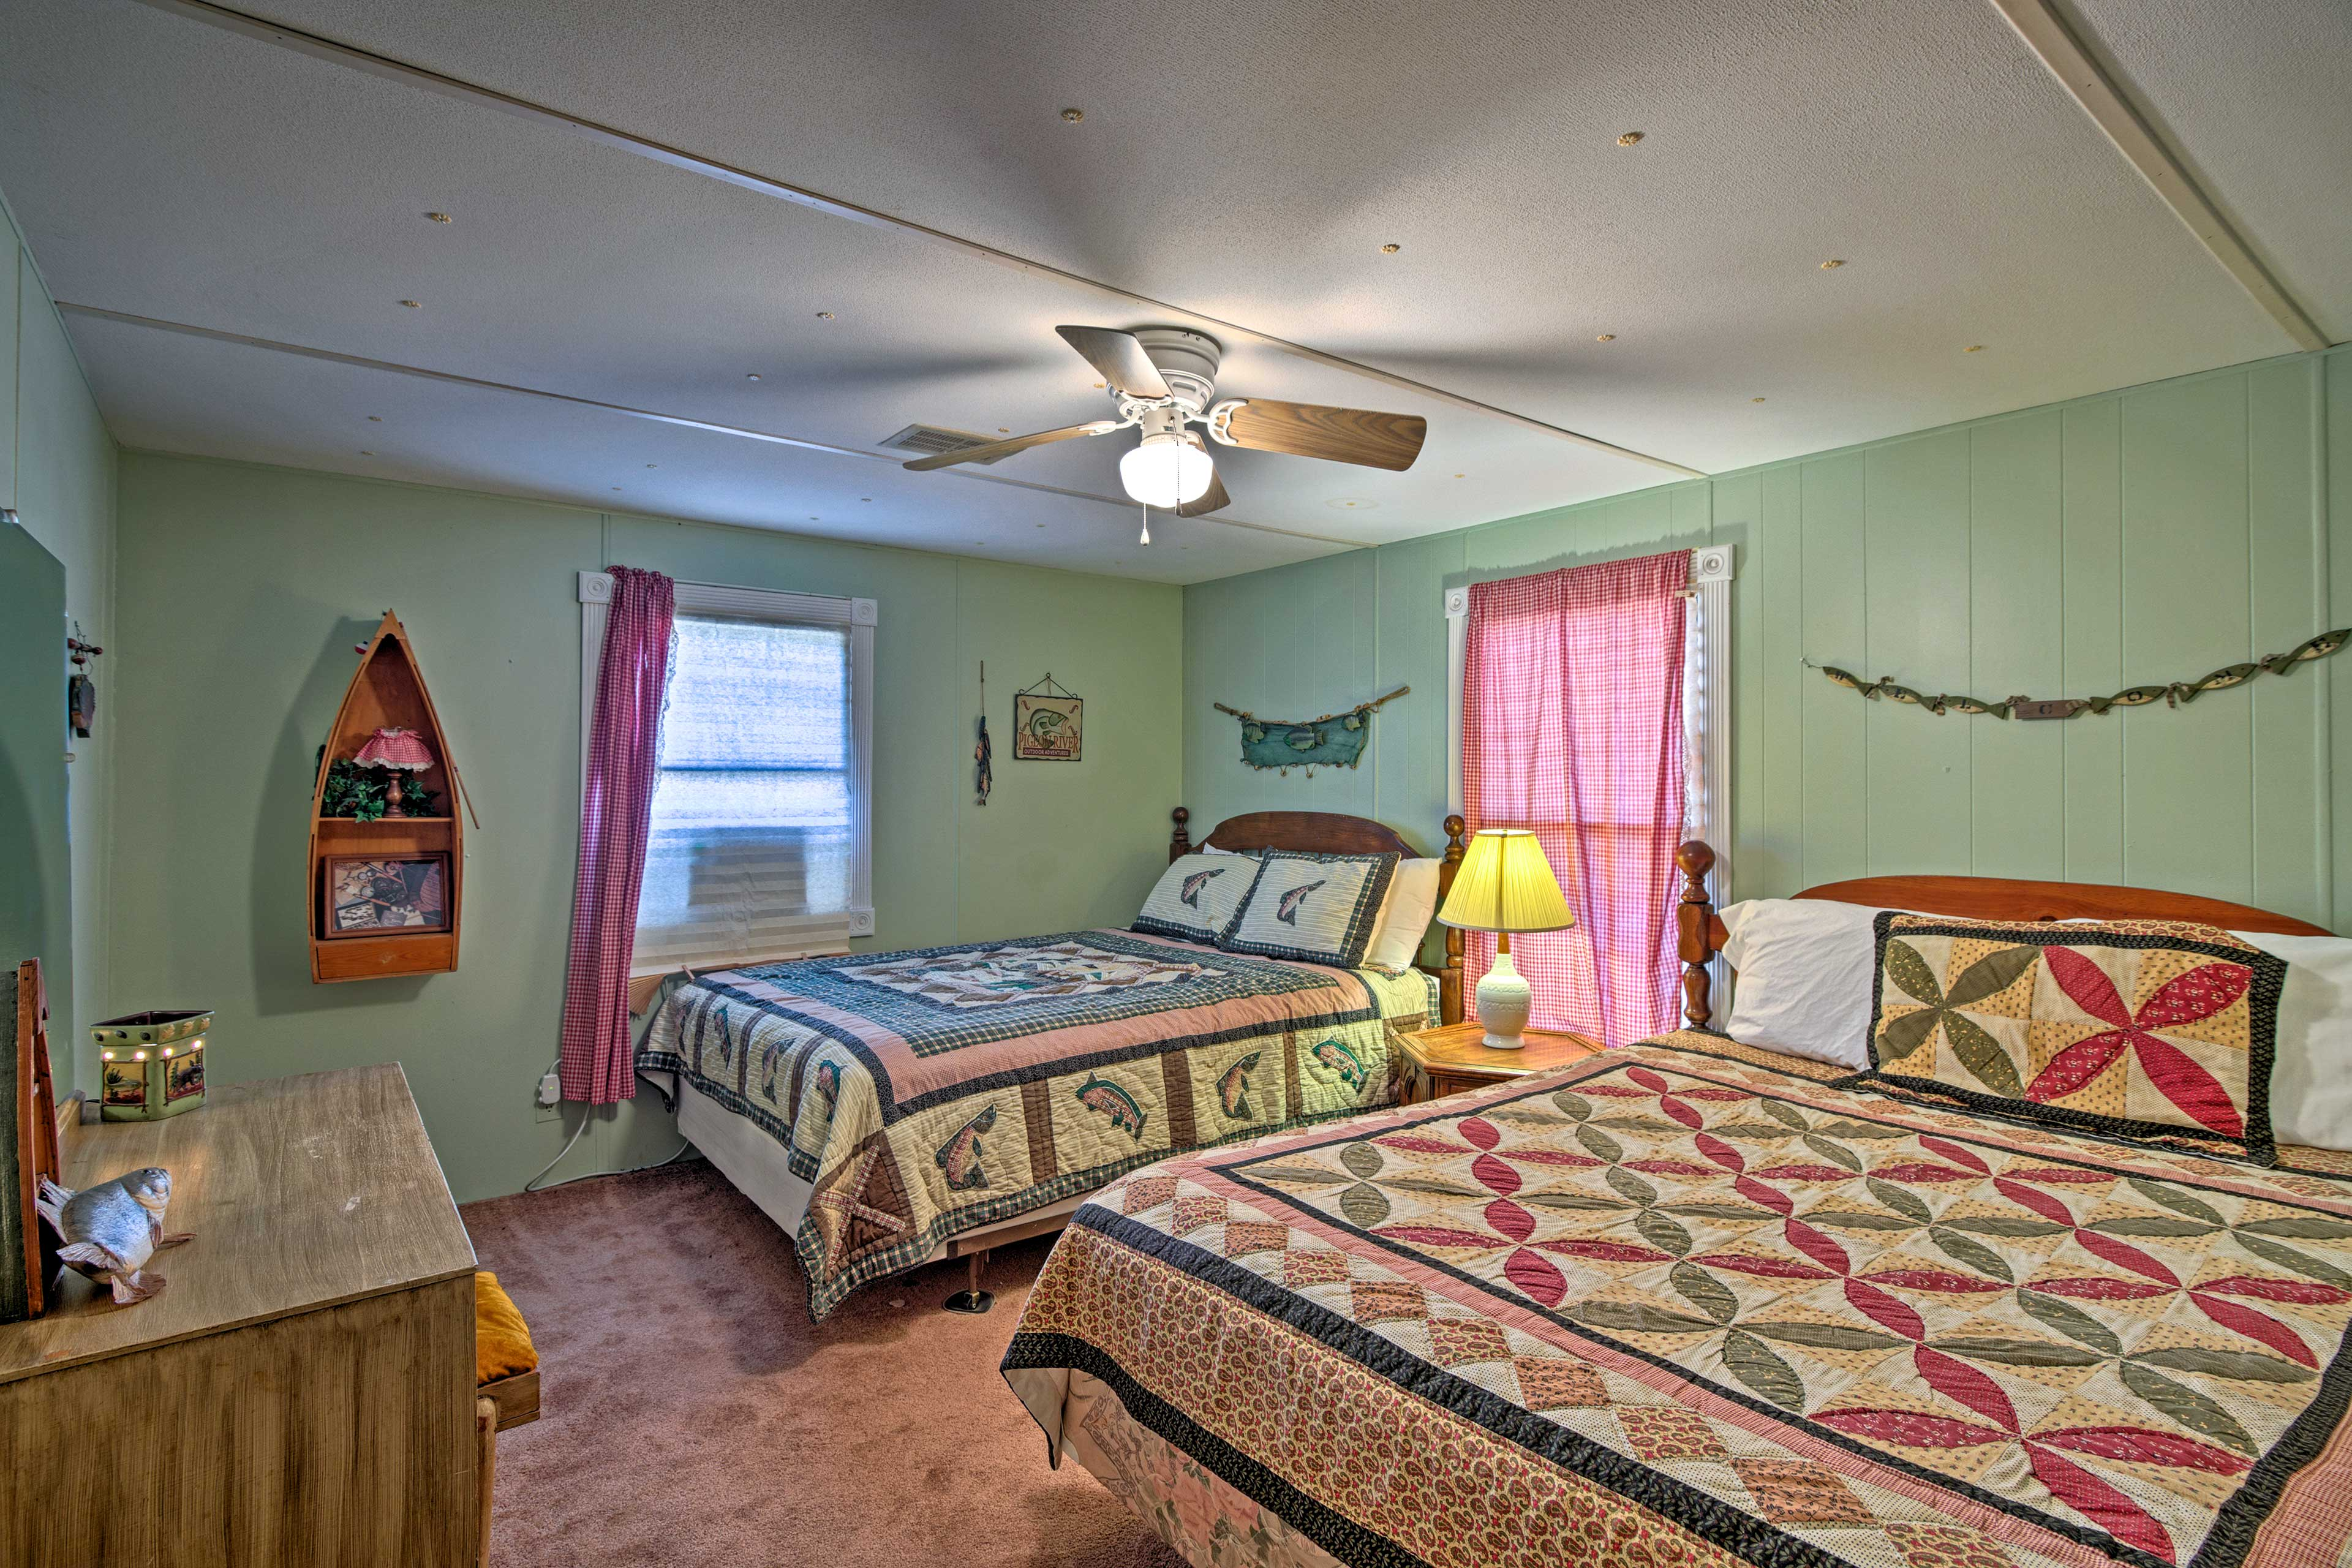 Two queen-sized beds make this room perfect for siblings or friends to share.